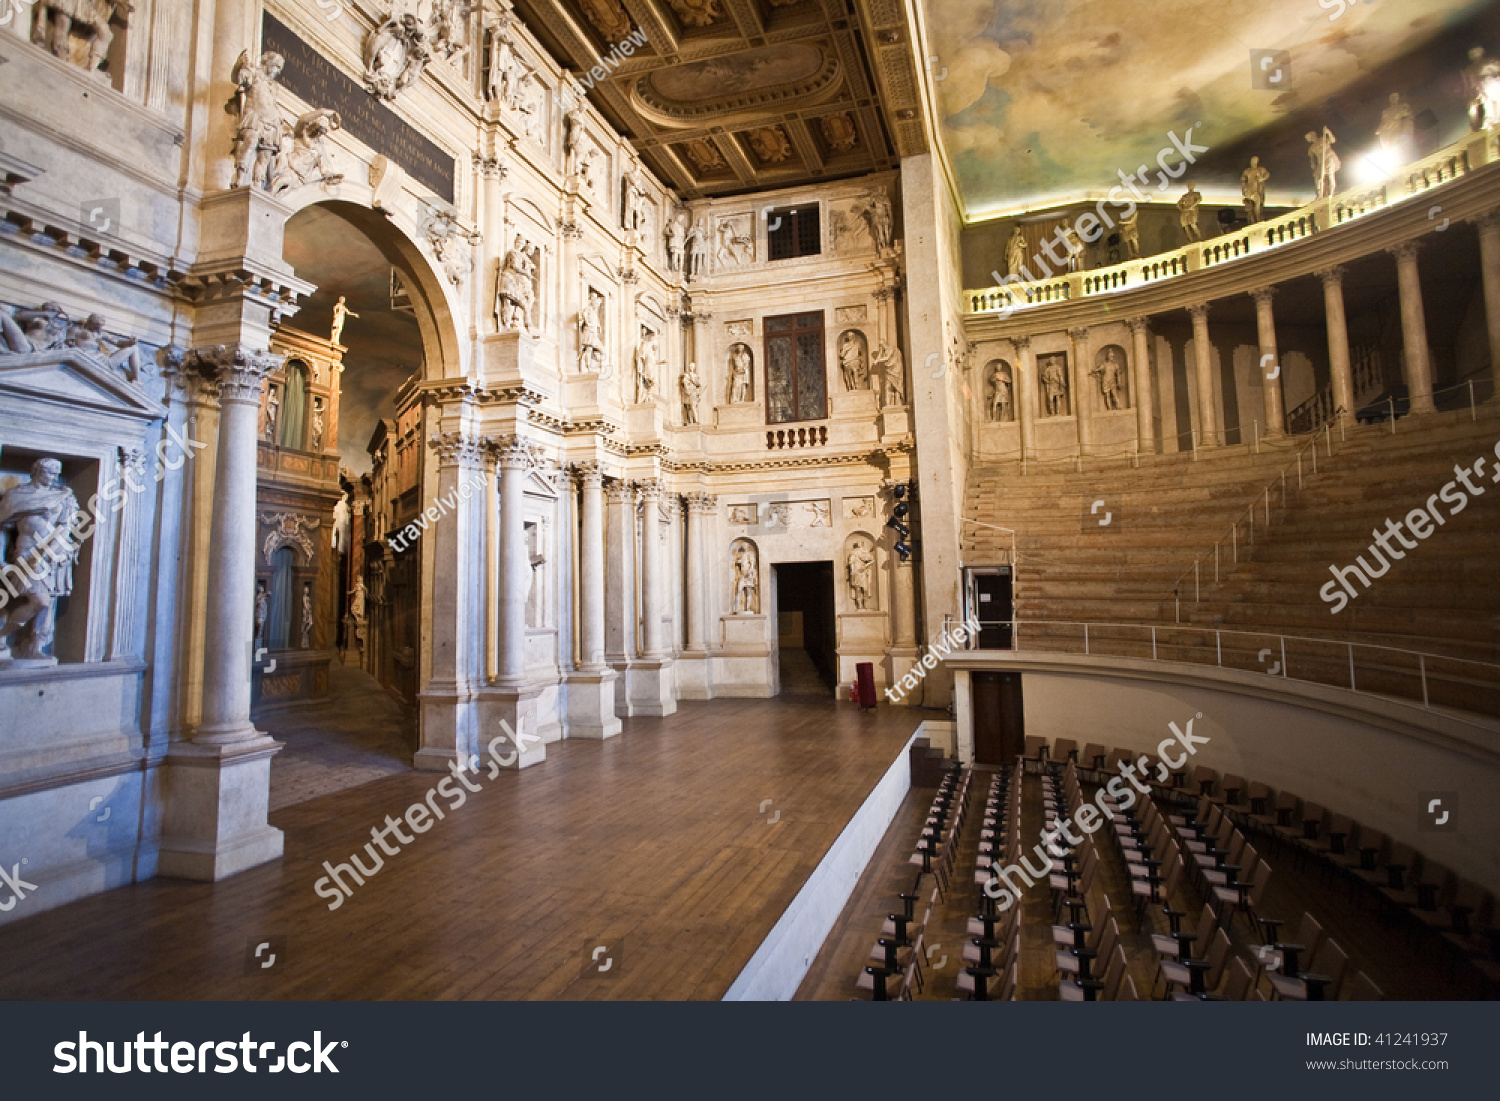 Exterior: Theatro Olympico Vicenca Famous Cealing Paintings Stock